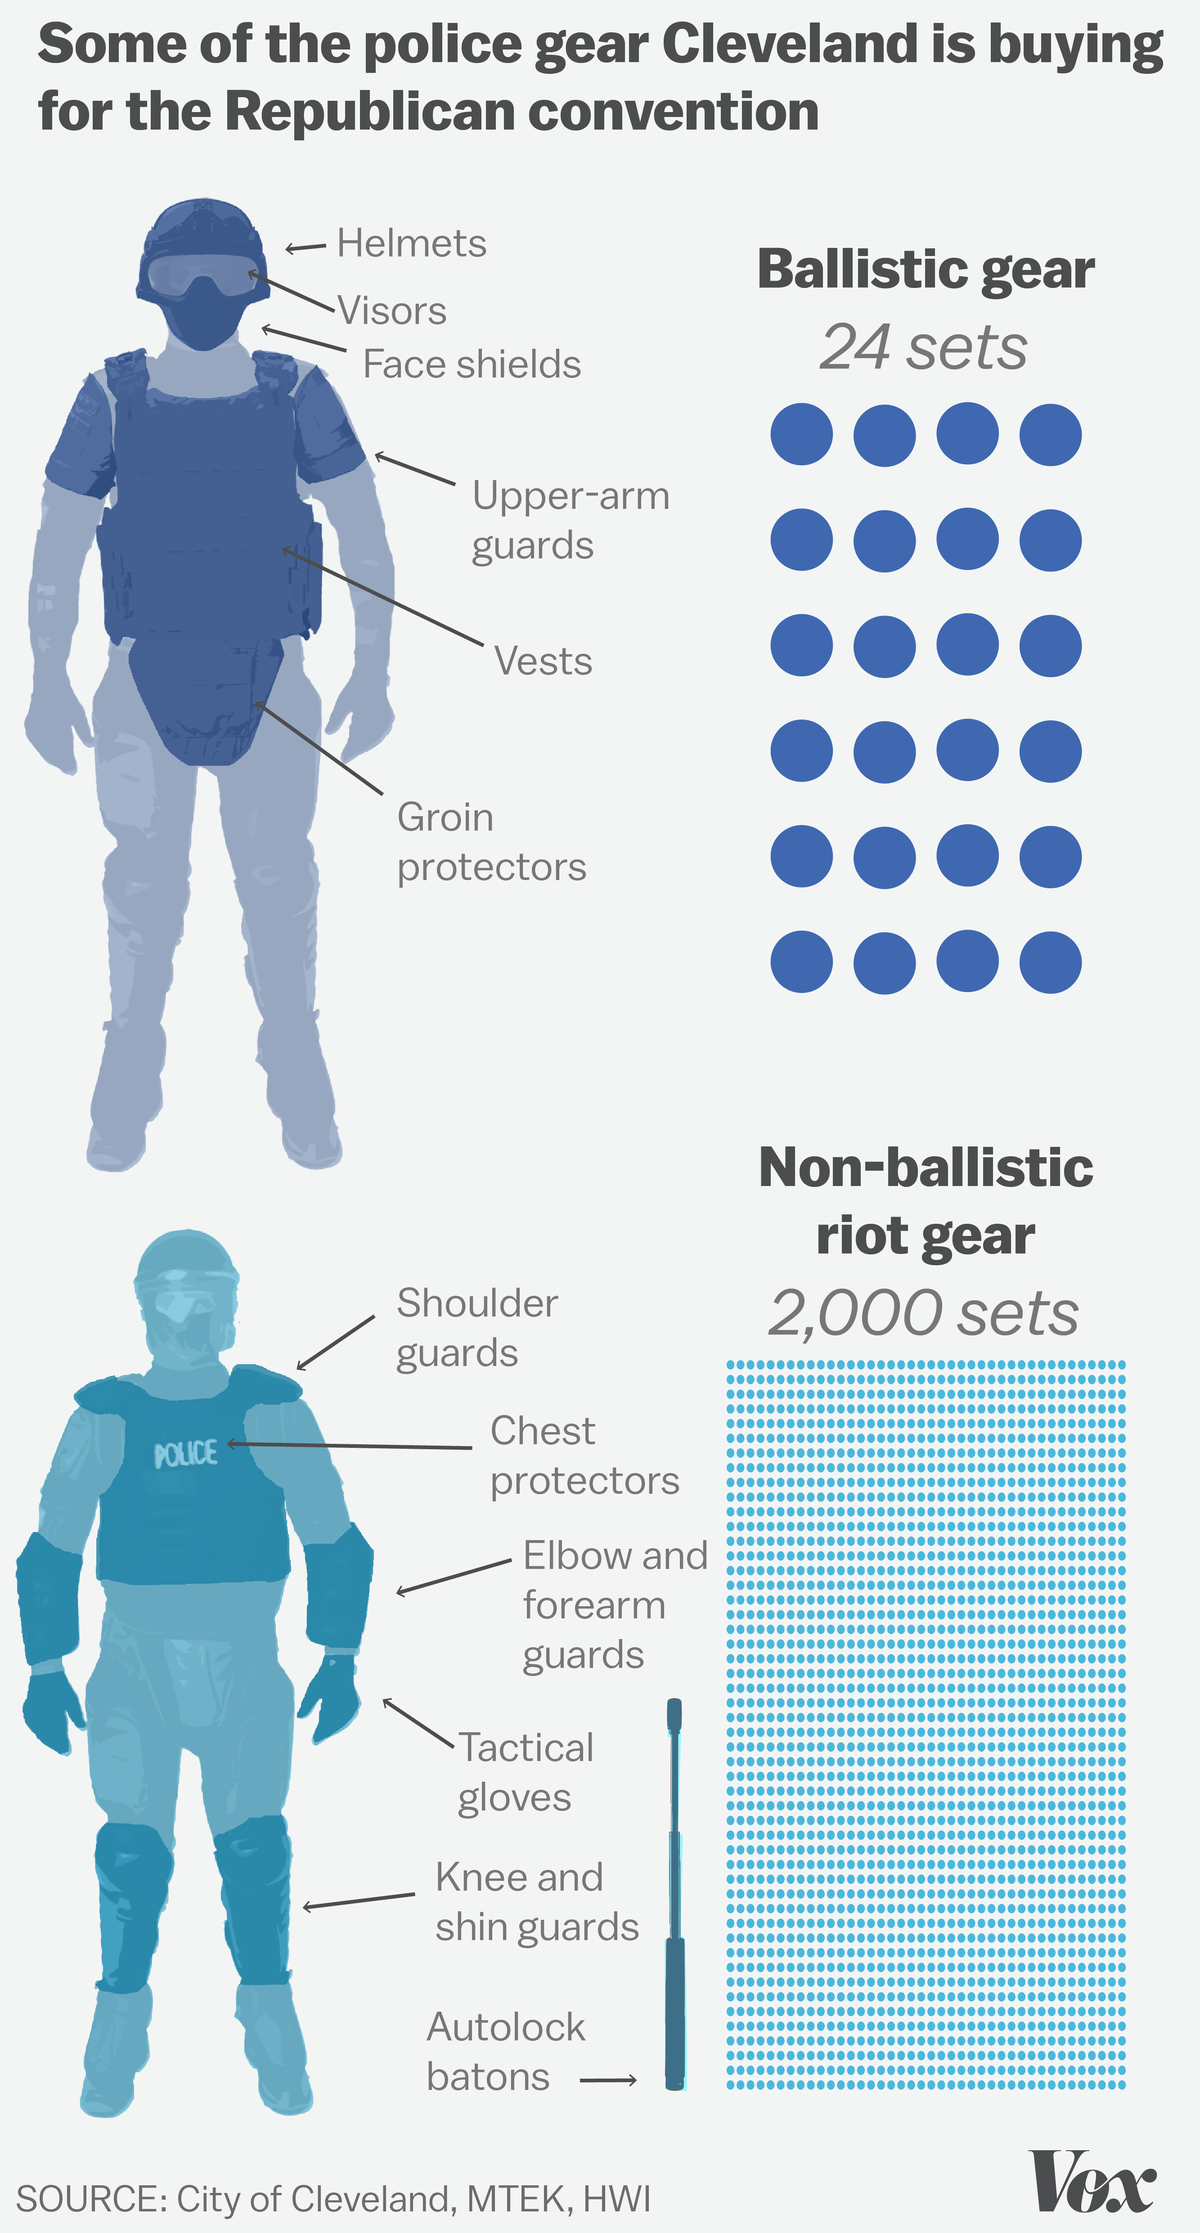 Cleveland will buy 2,000 sets of non-ballistic riot gear and 24 sets of ballistic gear.